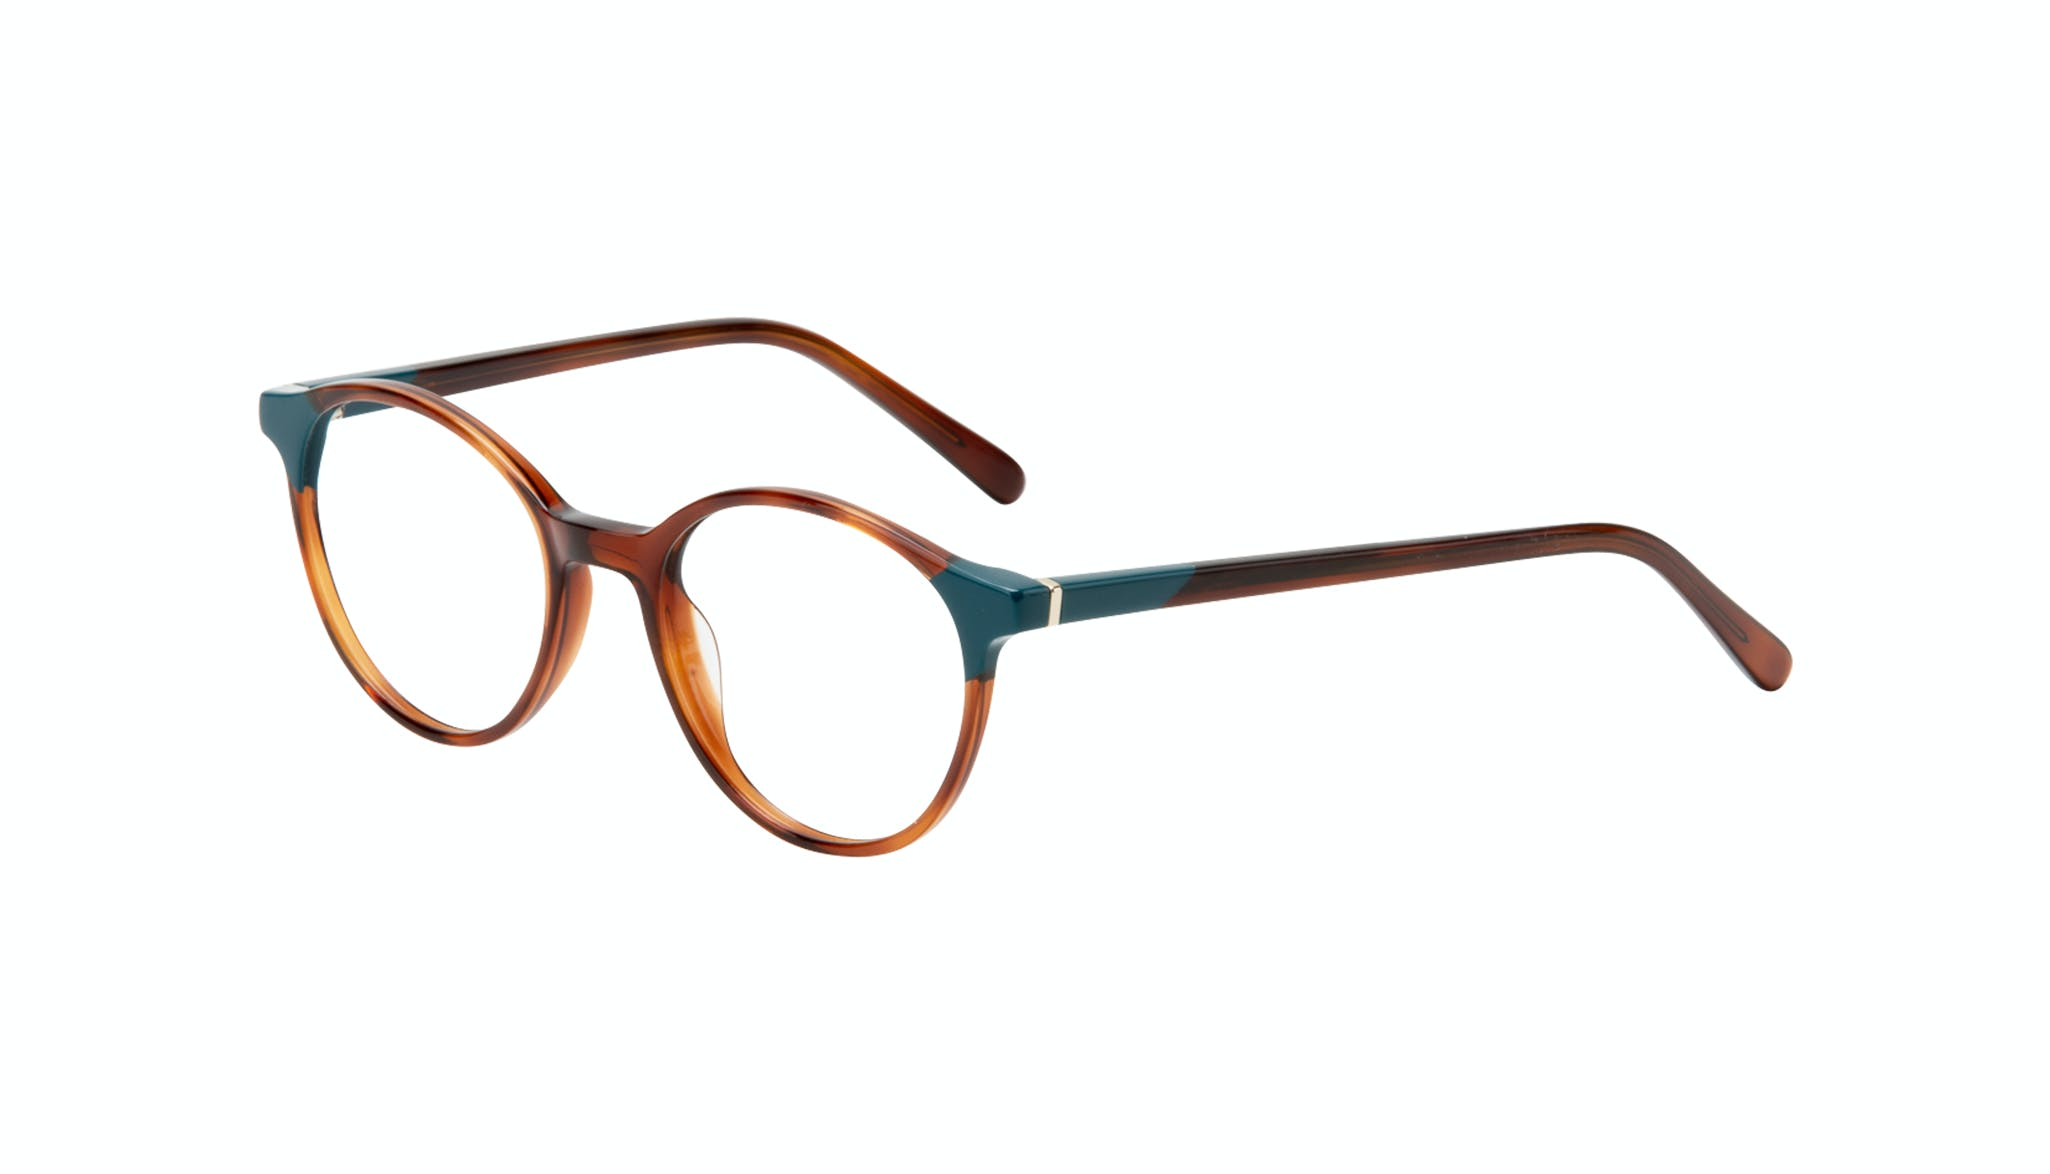 Affordable Fashion Glasses Round Eyeglasses Women Vivid Teal Tort Tilt